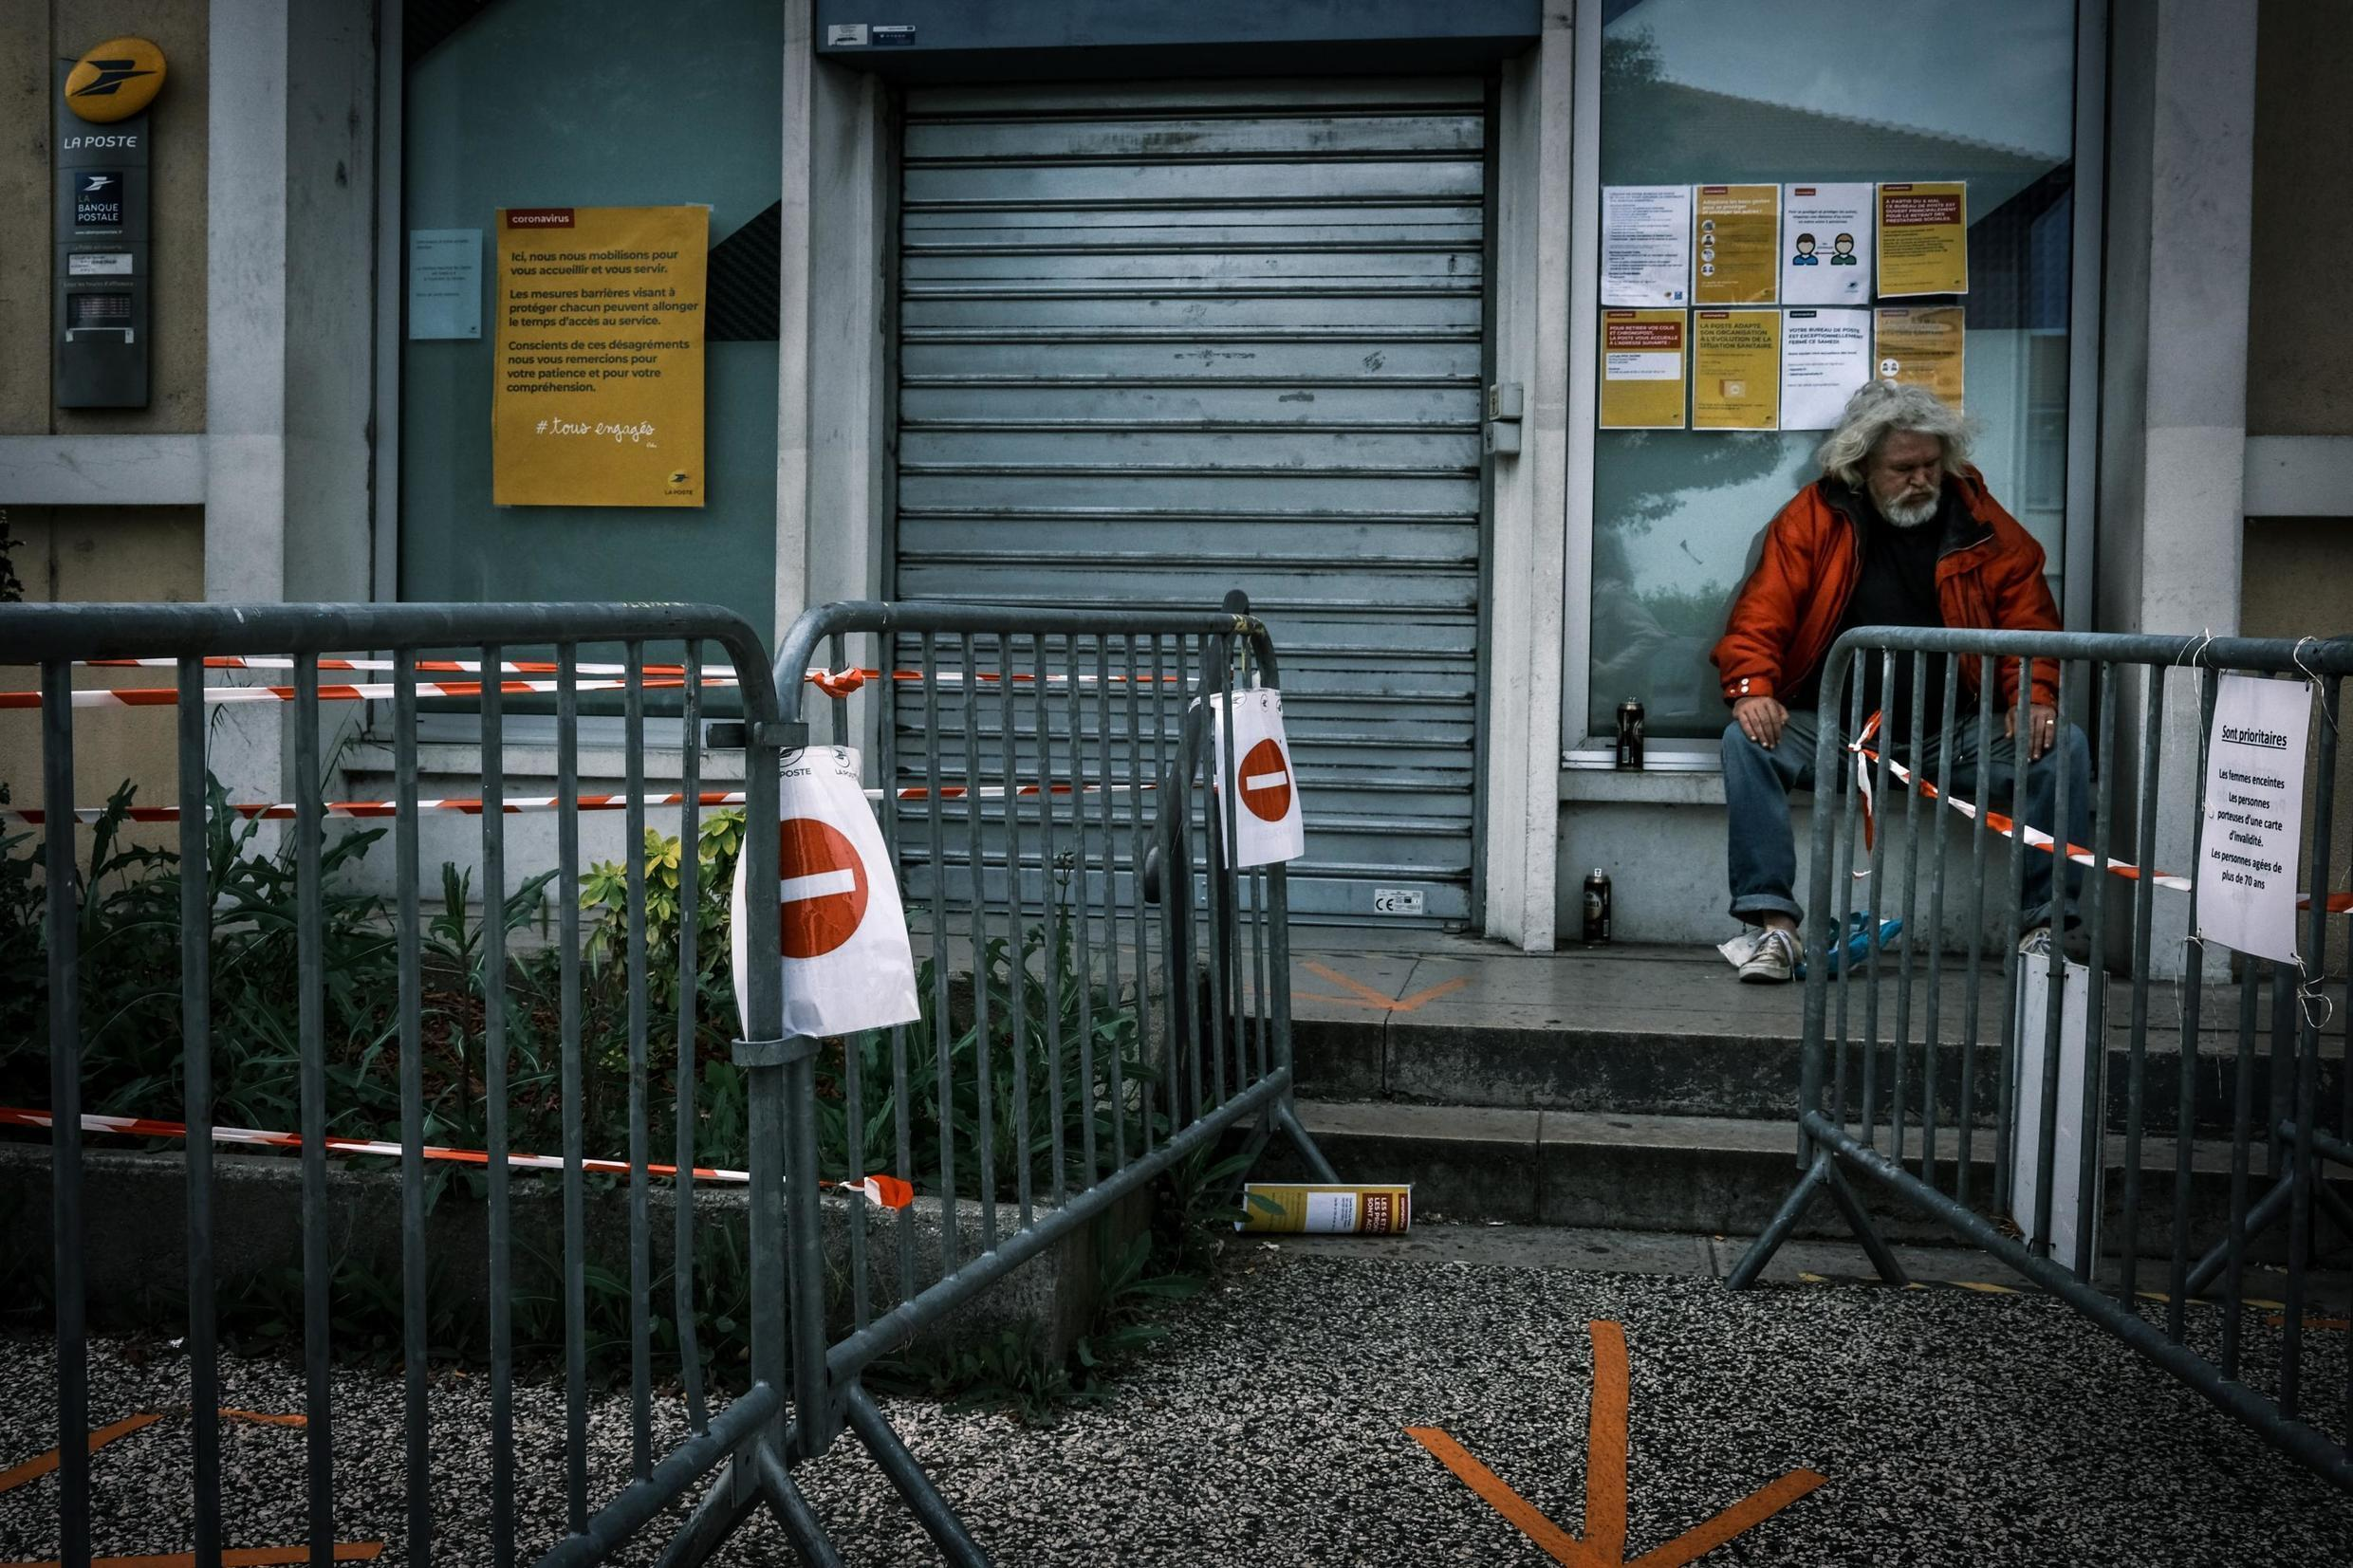 A homeless man outside the post office in Givors, near Lyon, France, 9 May 2020.